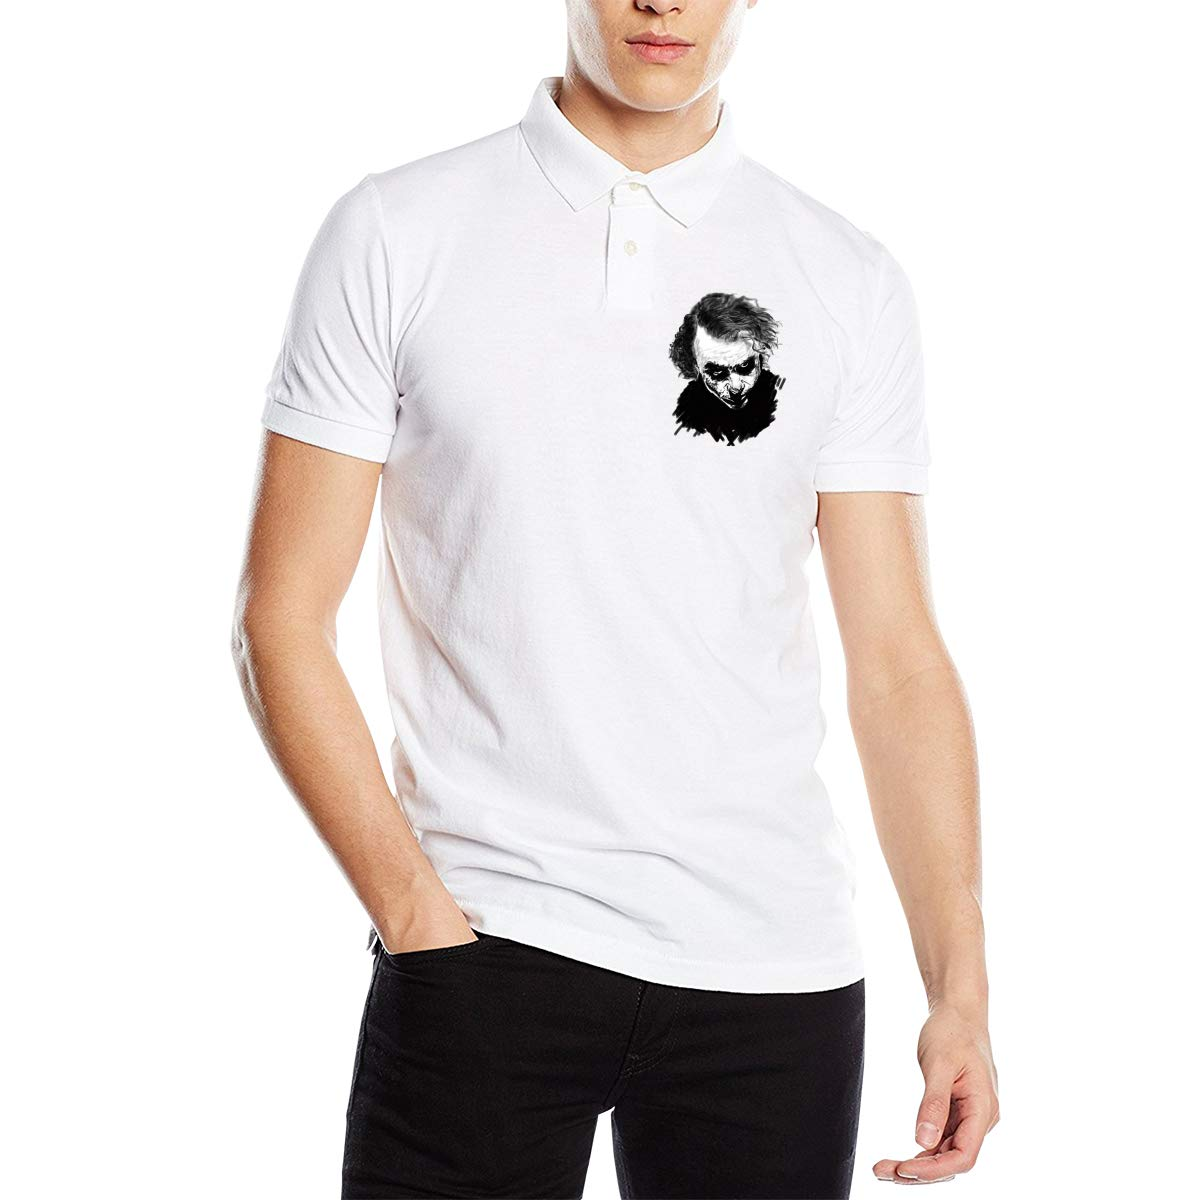 YONG-SHOP Joker Mens Regular-Fit Cotton Polo Shirt